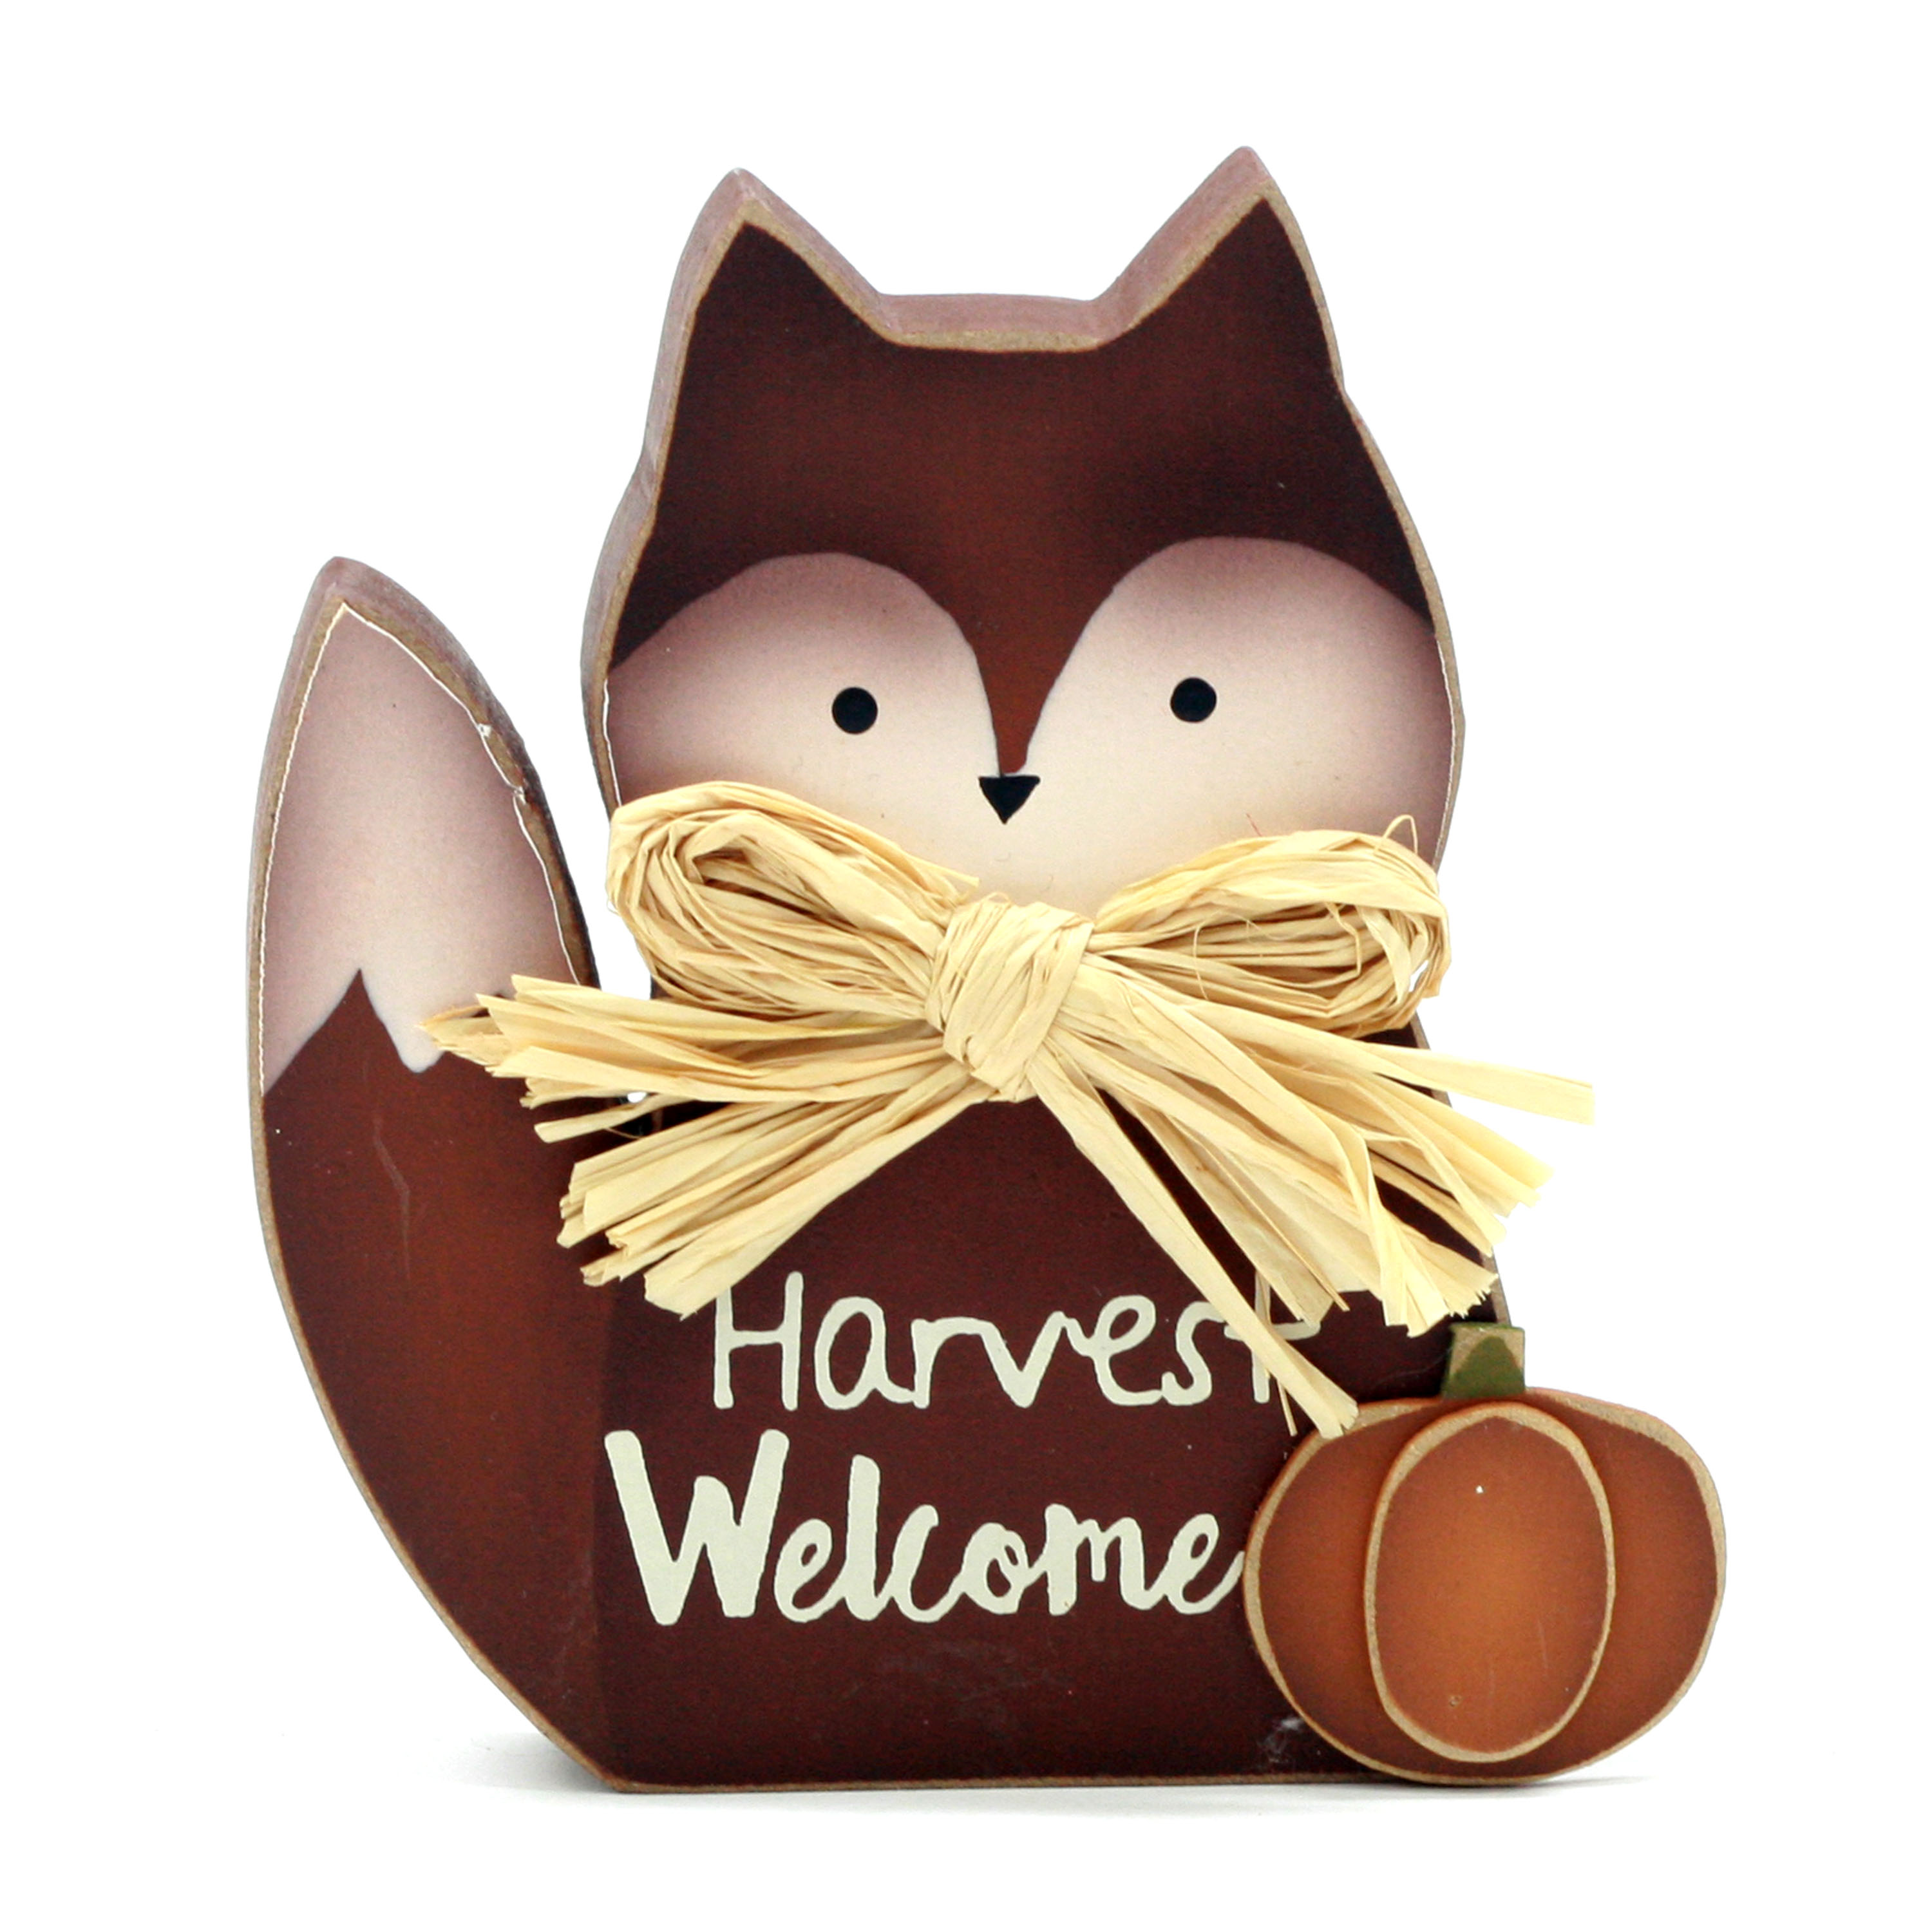 "Harvest 6-inch Fox Style And With Word ""Harvest Welcome"" Wooden Decor"